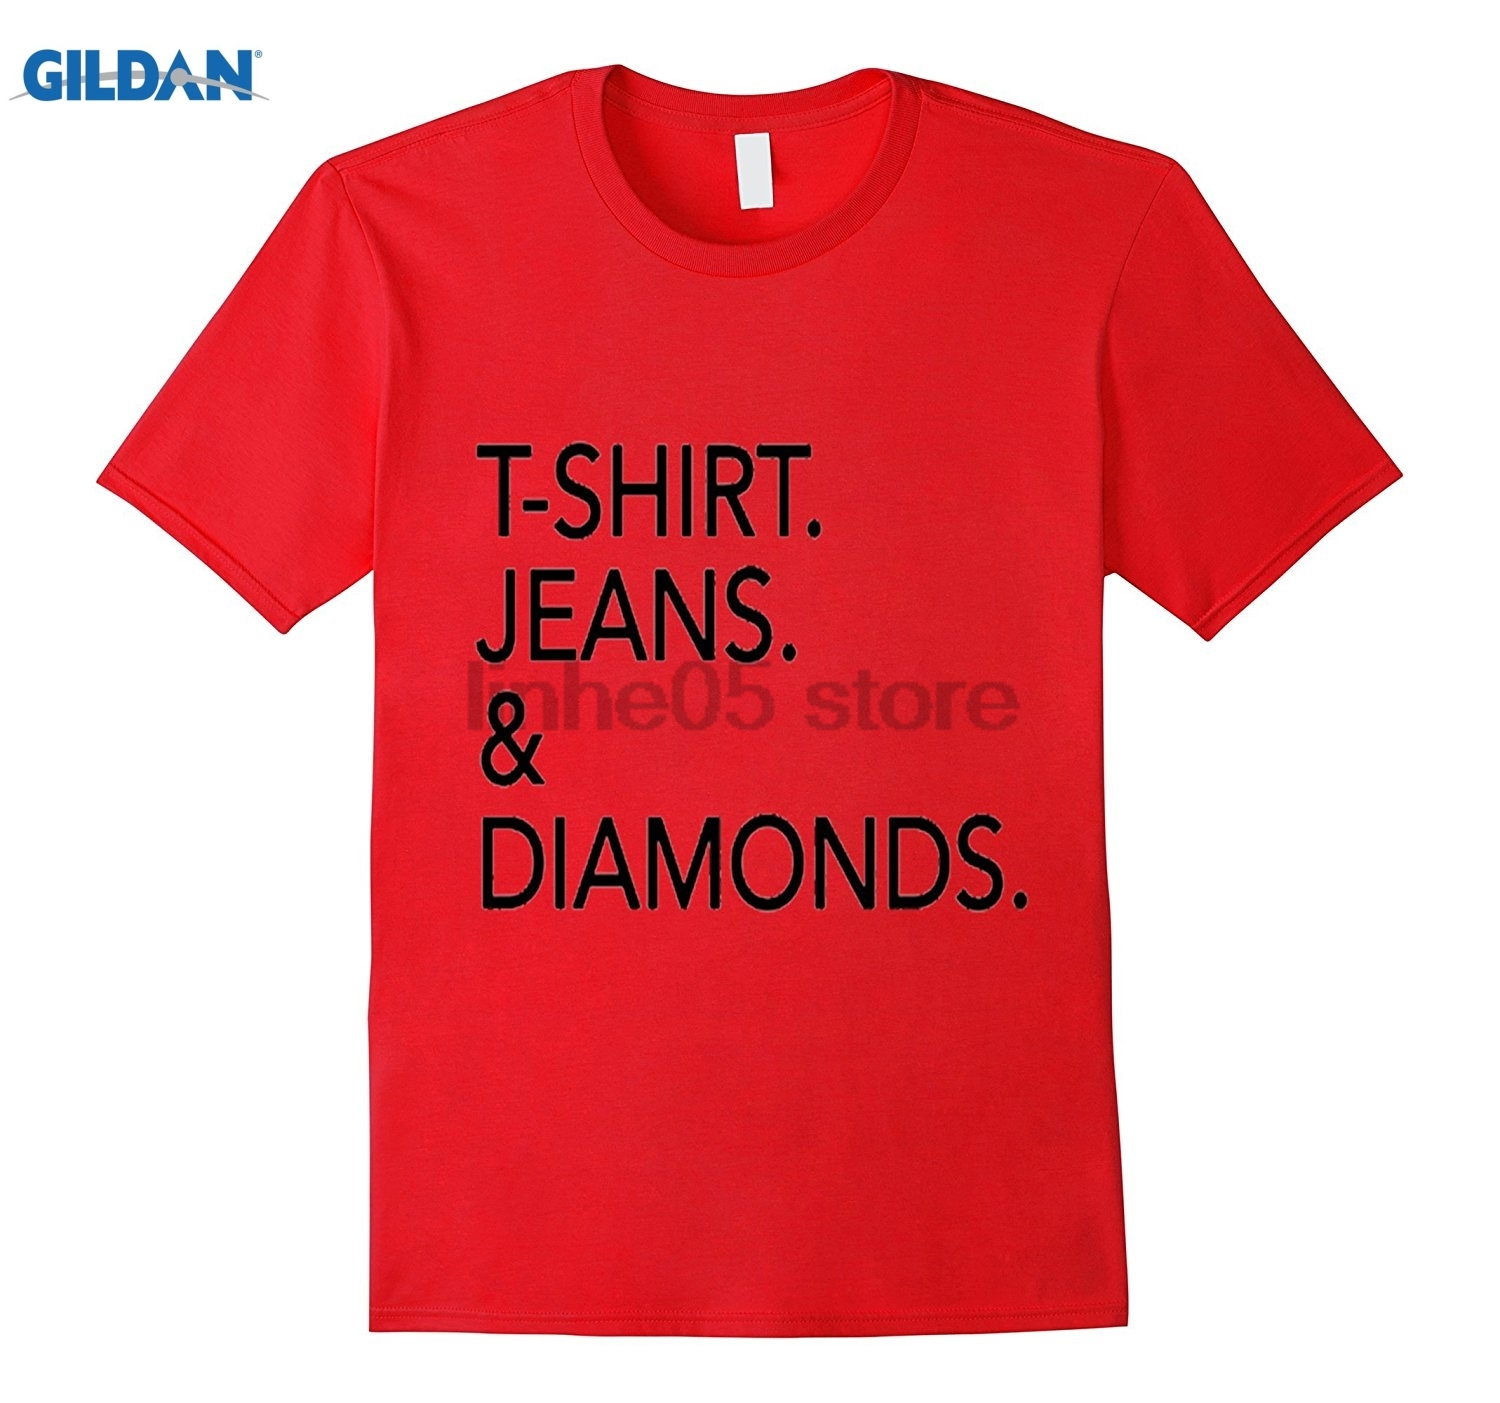 GILDAN T-Shirt. Jeans. & Diamonds. Womens Tee Shirt Mothers Day Ms. T-shirt